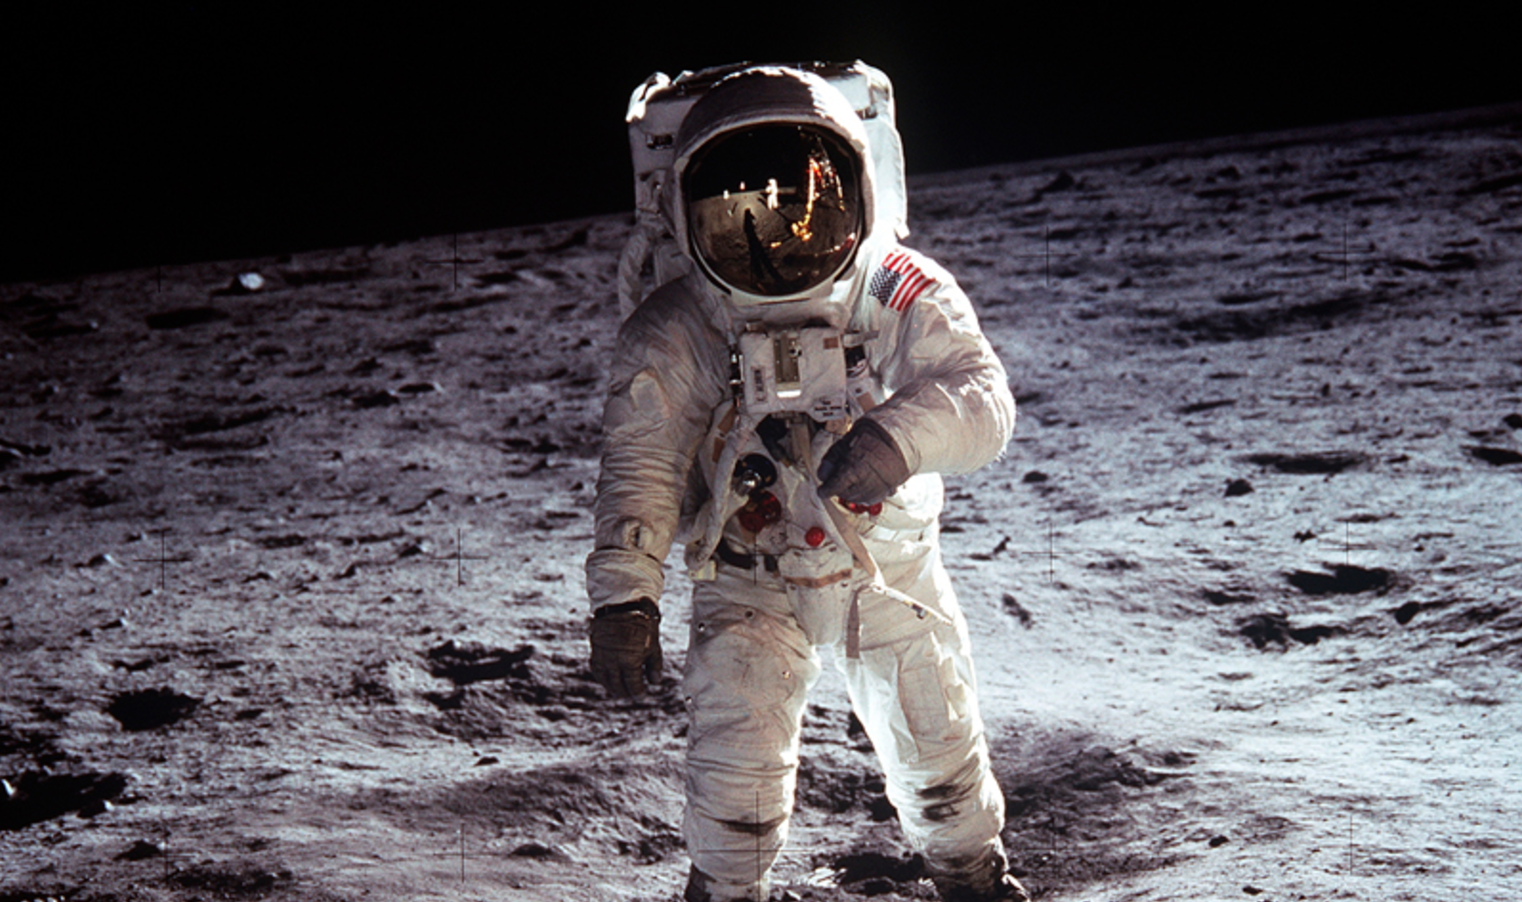 Man on the Moon – Neil Armstrong's Iconic Photograph